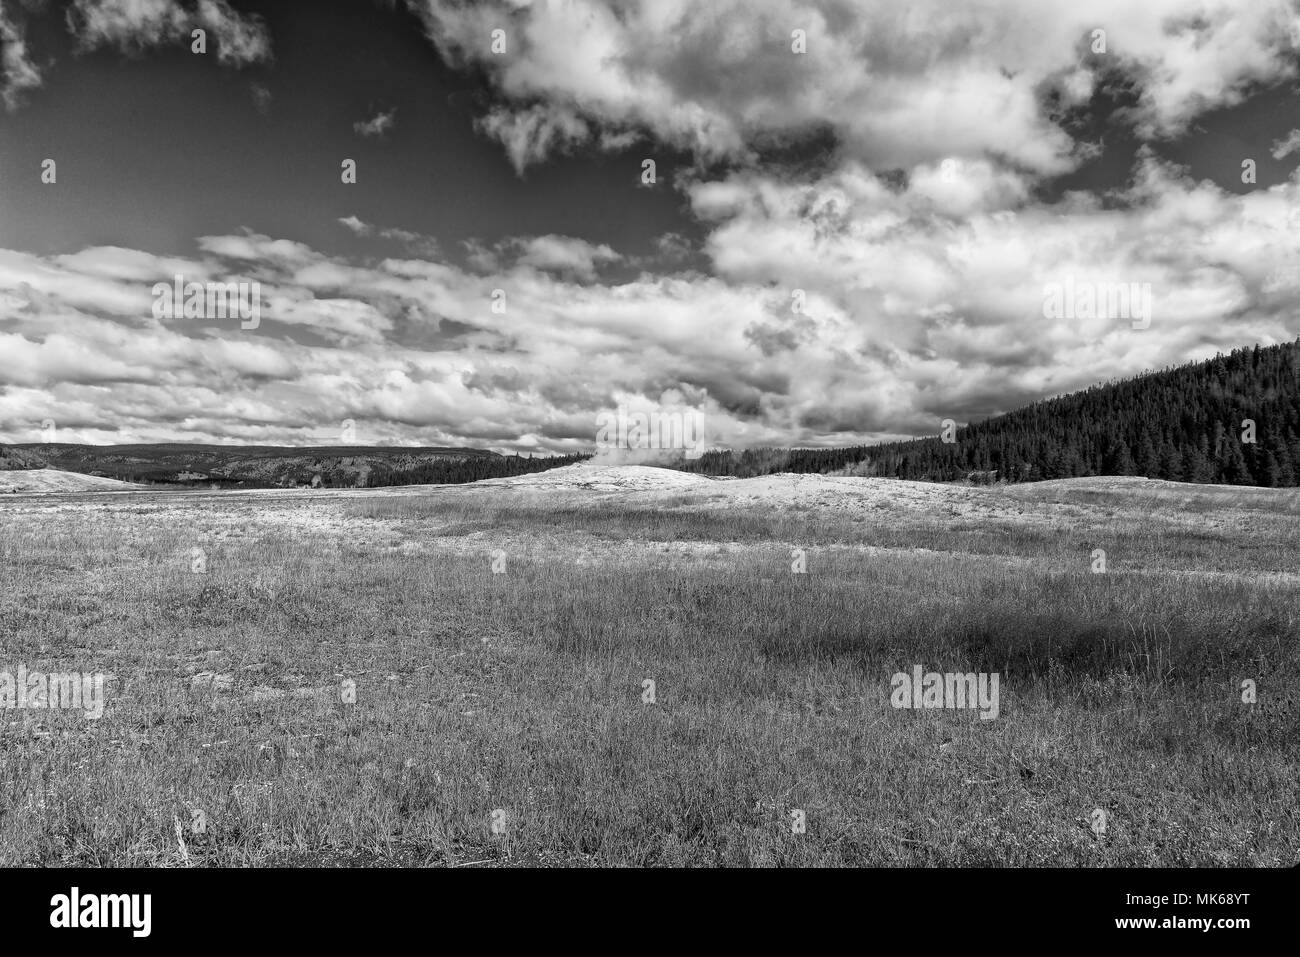 Empty grass field with hills to one side under a cloudy sky, black and white. - Stock Image